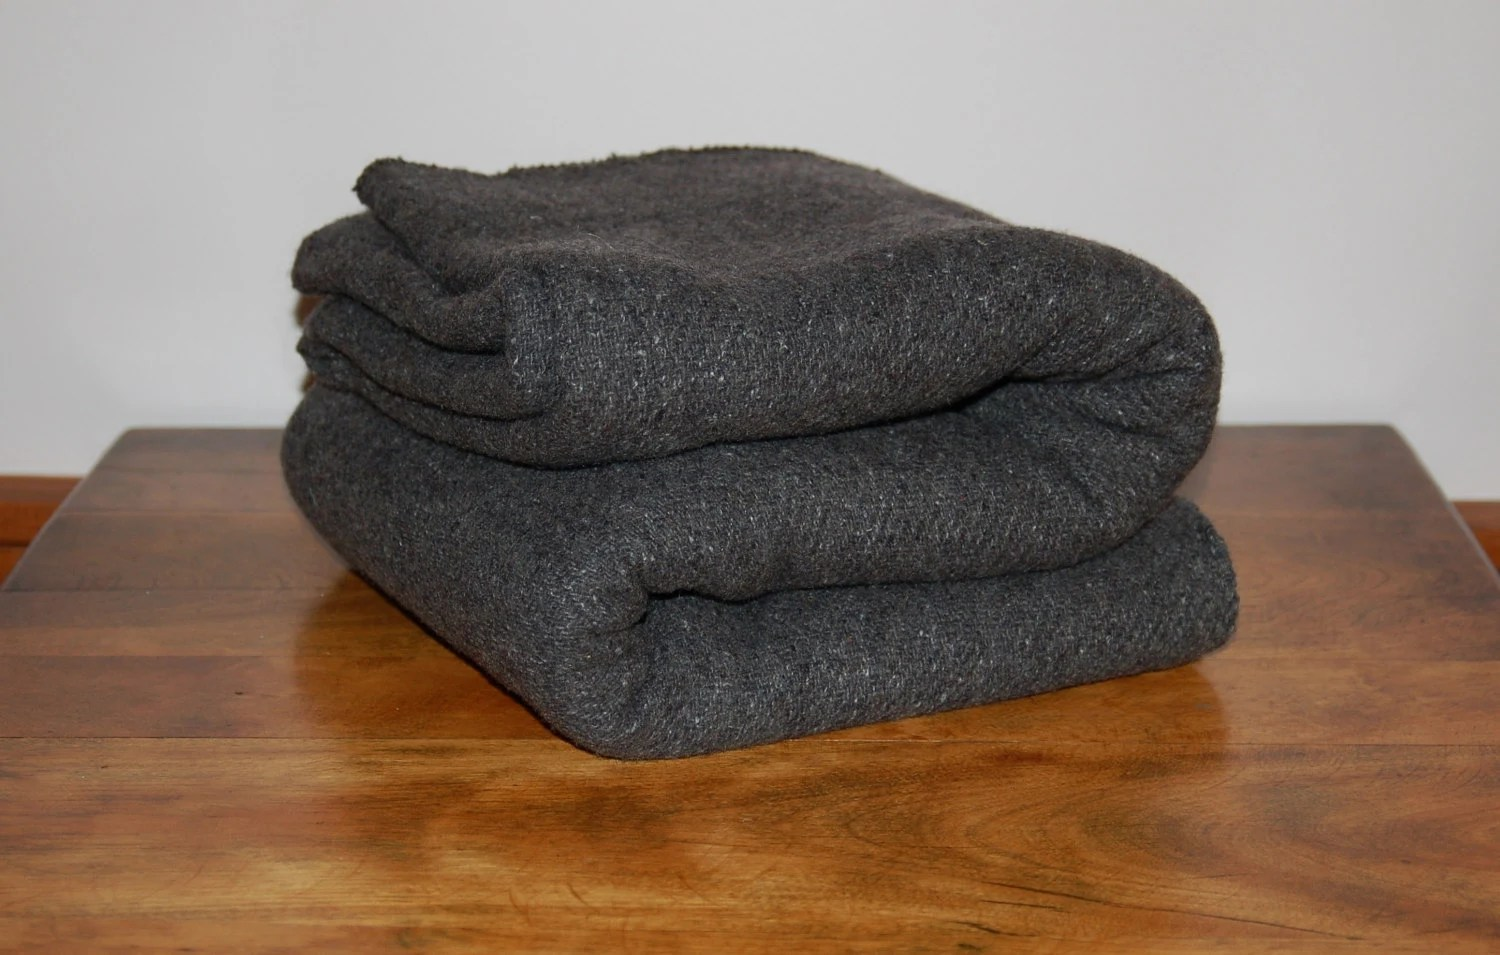 charcoal gray sofa bed curved sectional living room heathered dark grey wool throw blanket dorm